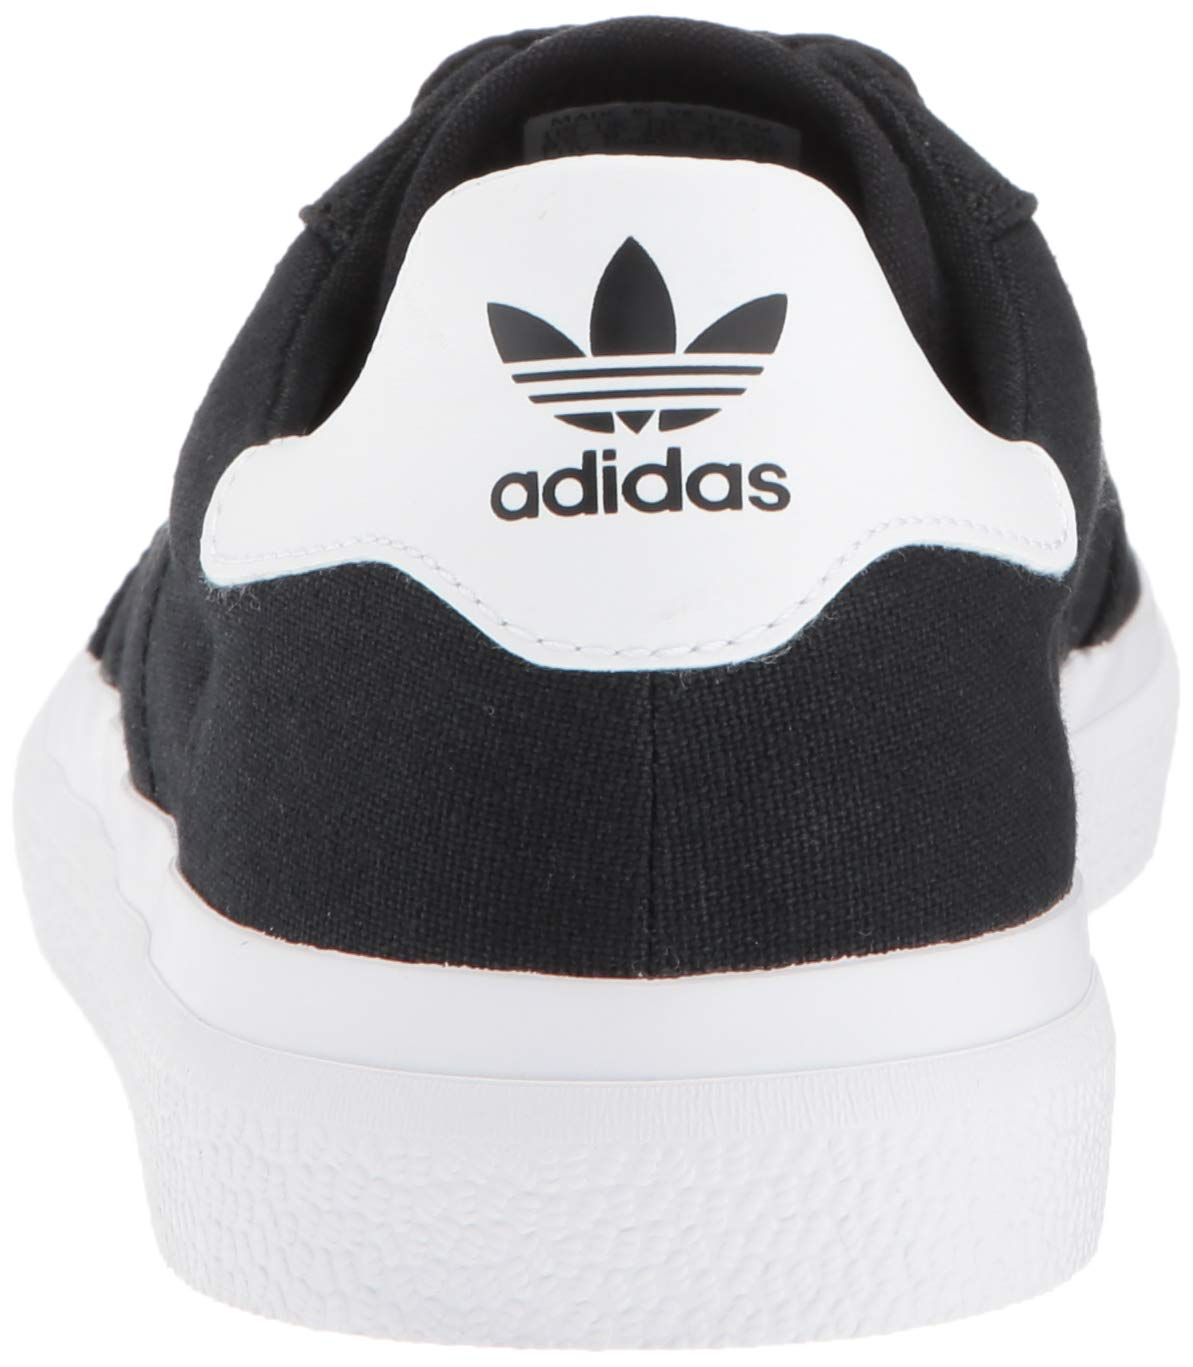 adidas Originals unisex-adult Black/White, 3 MC Skate Shoe 6.5 M US by adidas Originals (Image #2)